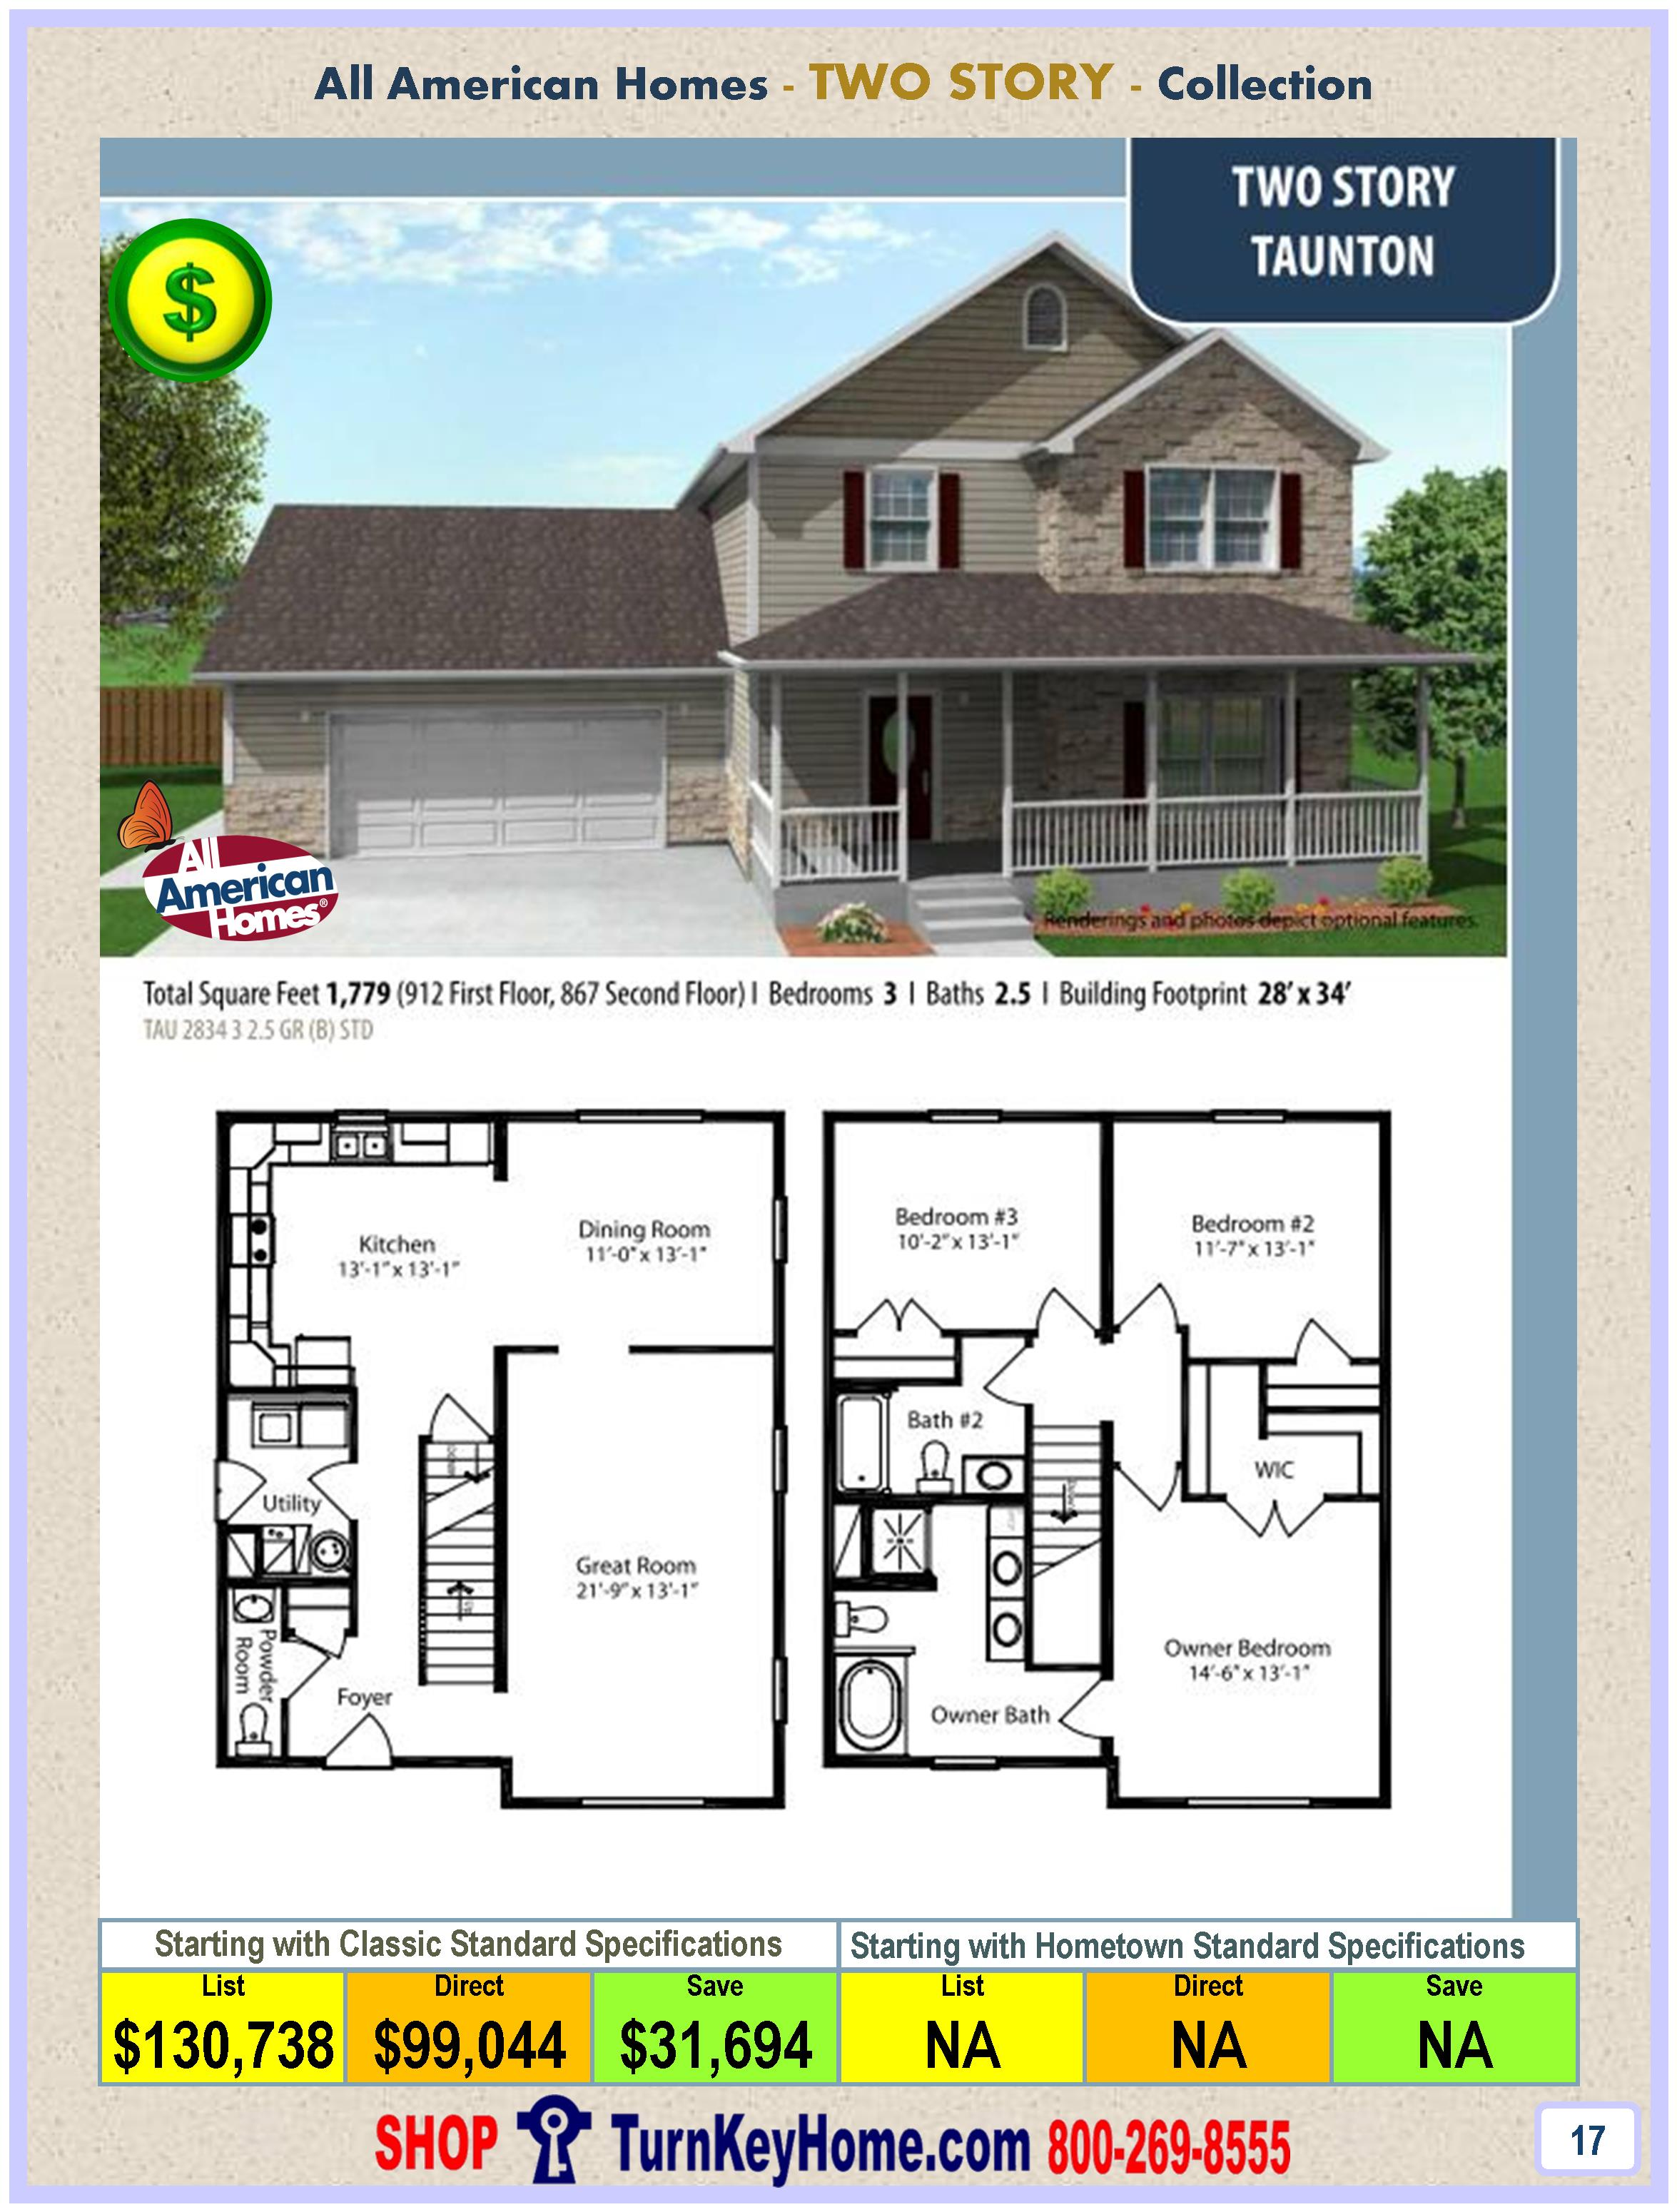 Modular.Home.All.American.Homes.Two.Story.TAUNTON.Plan.Price.P17.1115